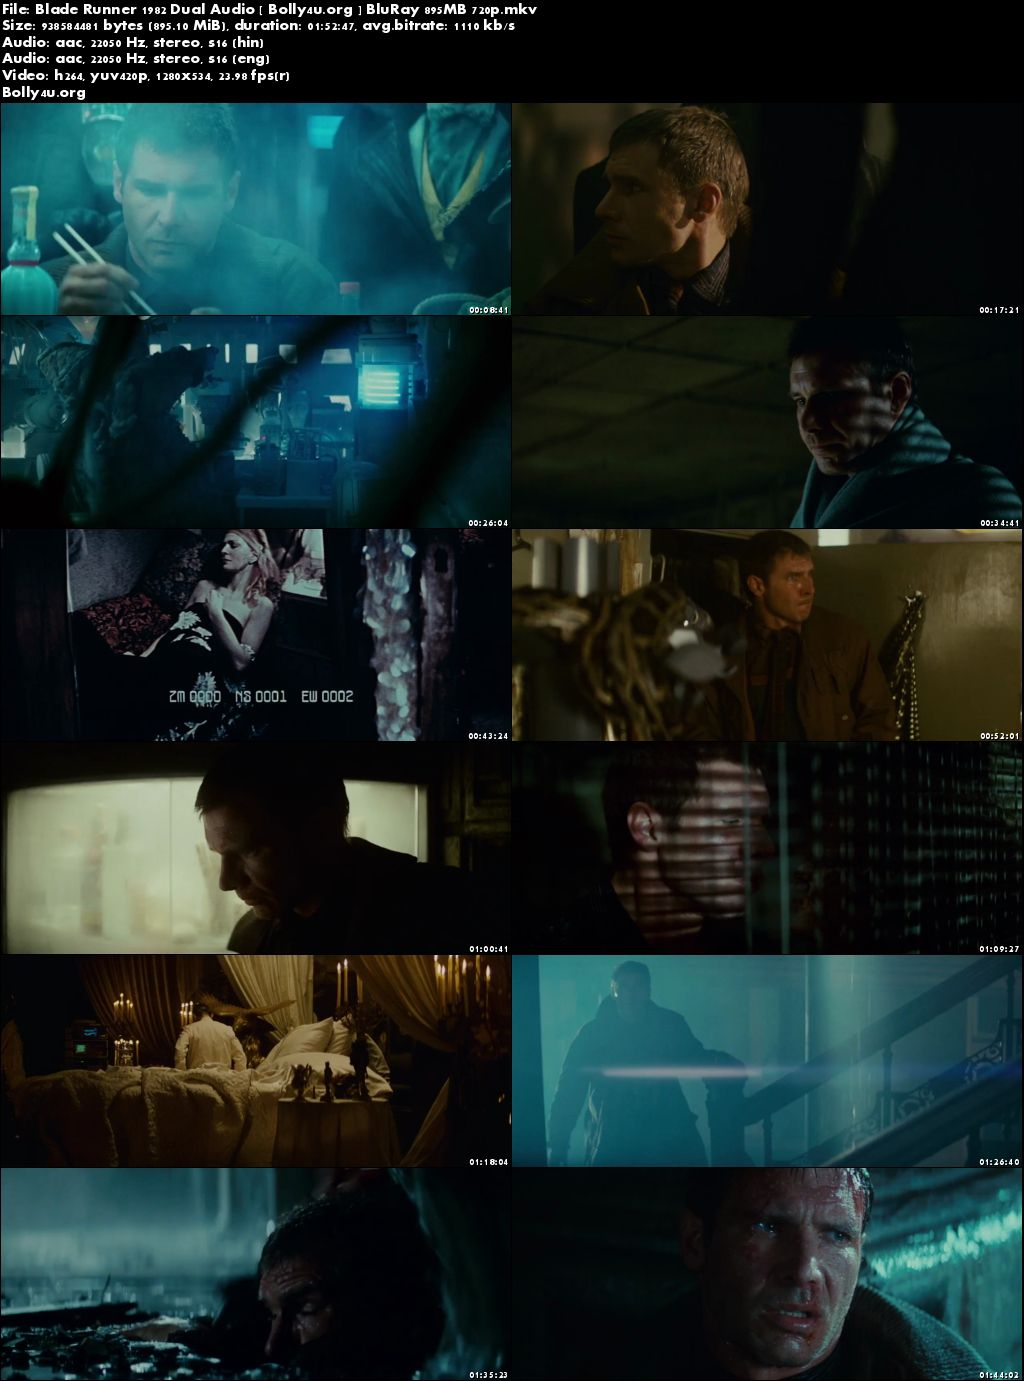 Blade Runner 1982 BRRip 480p Hindi Dual Audio 350MB - photo#23